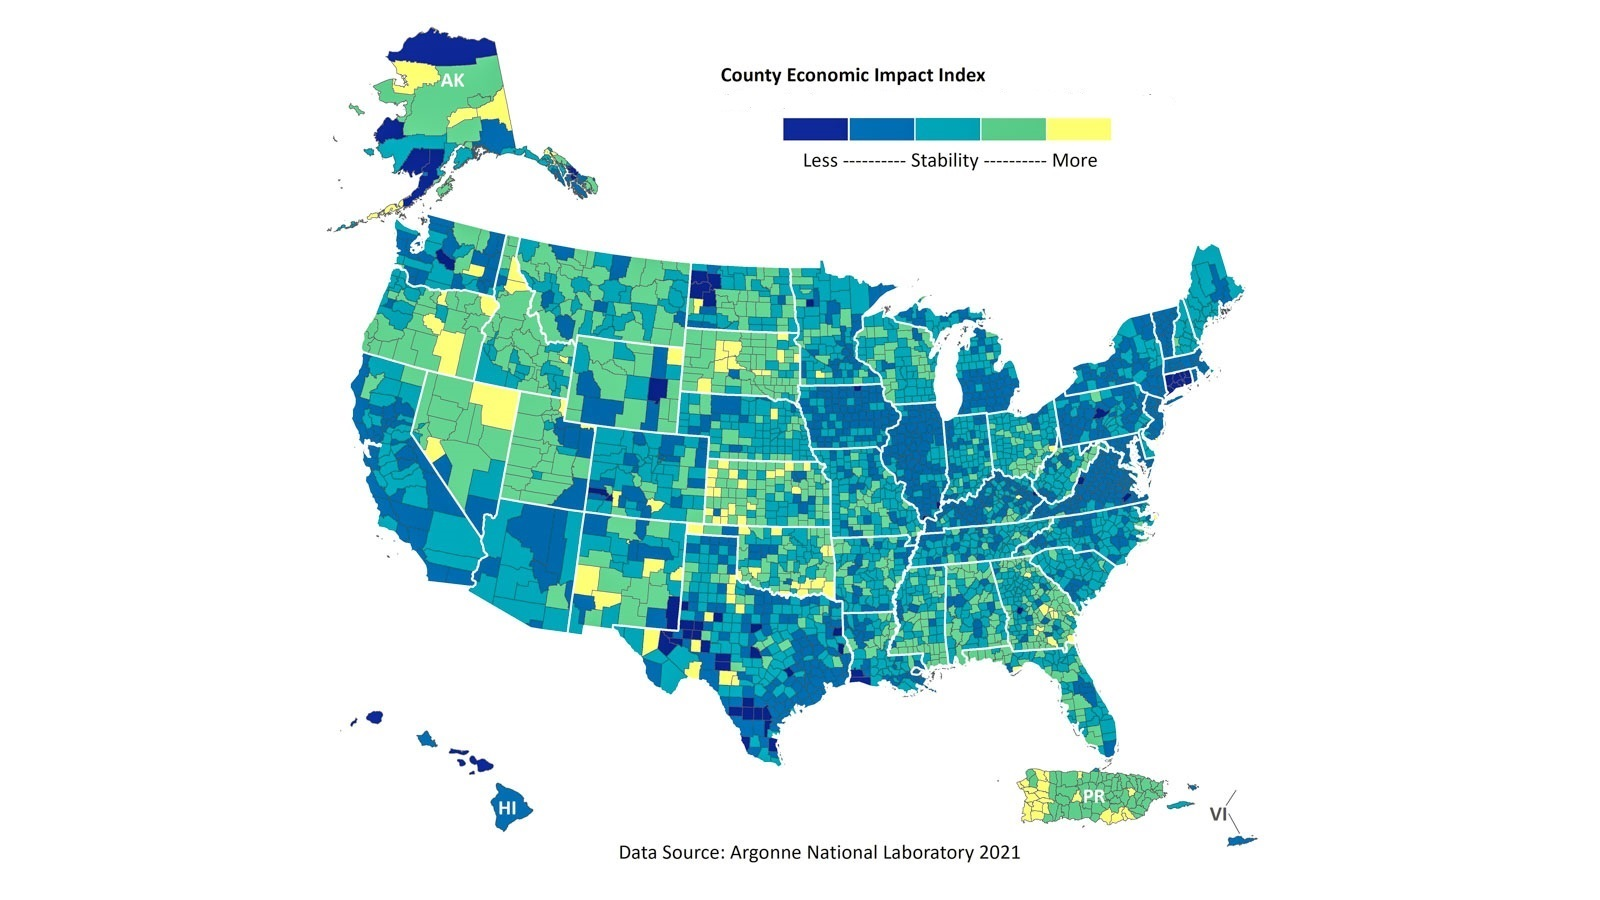 This map shows regions — down to the county level — whose local economies may be more adversely affected during medium- to long-term disruptions. Darker colors indicate the least stable counties. (Image by Argonne National Laboratory.)